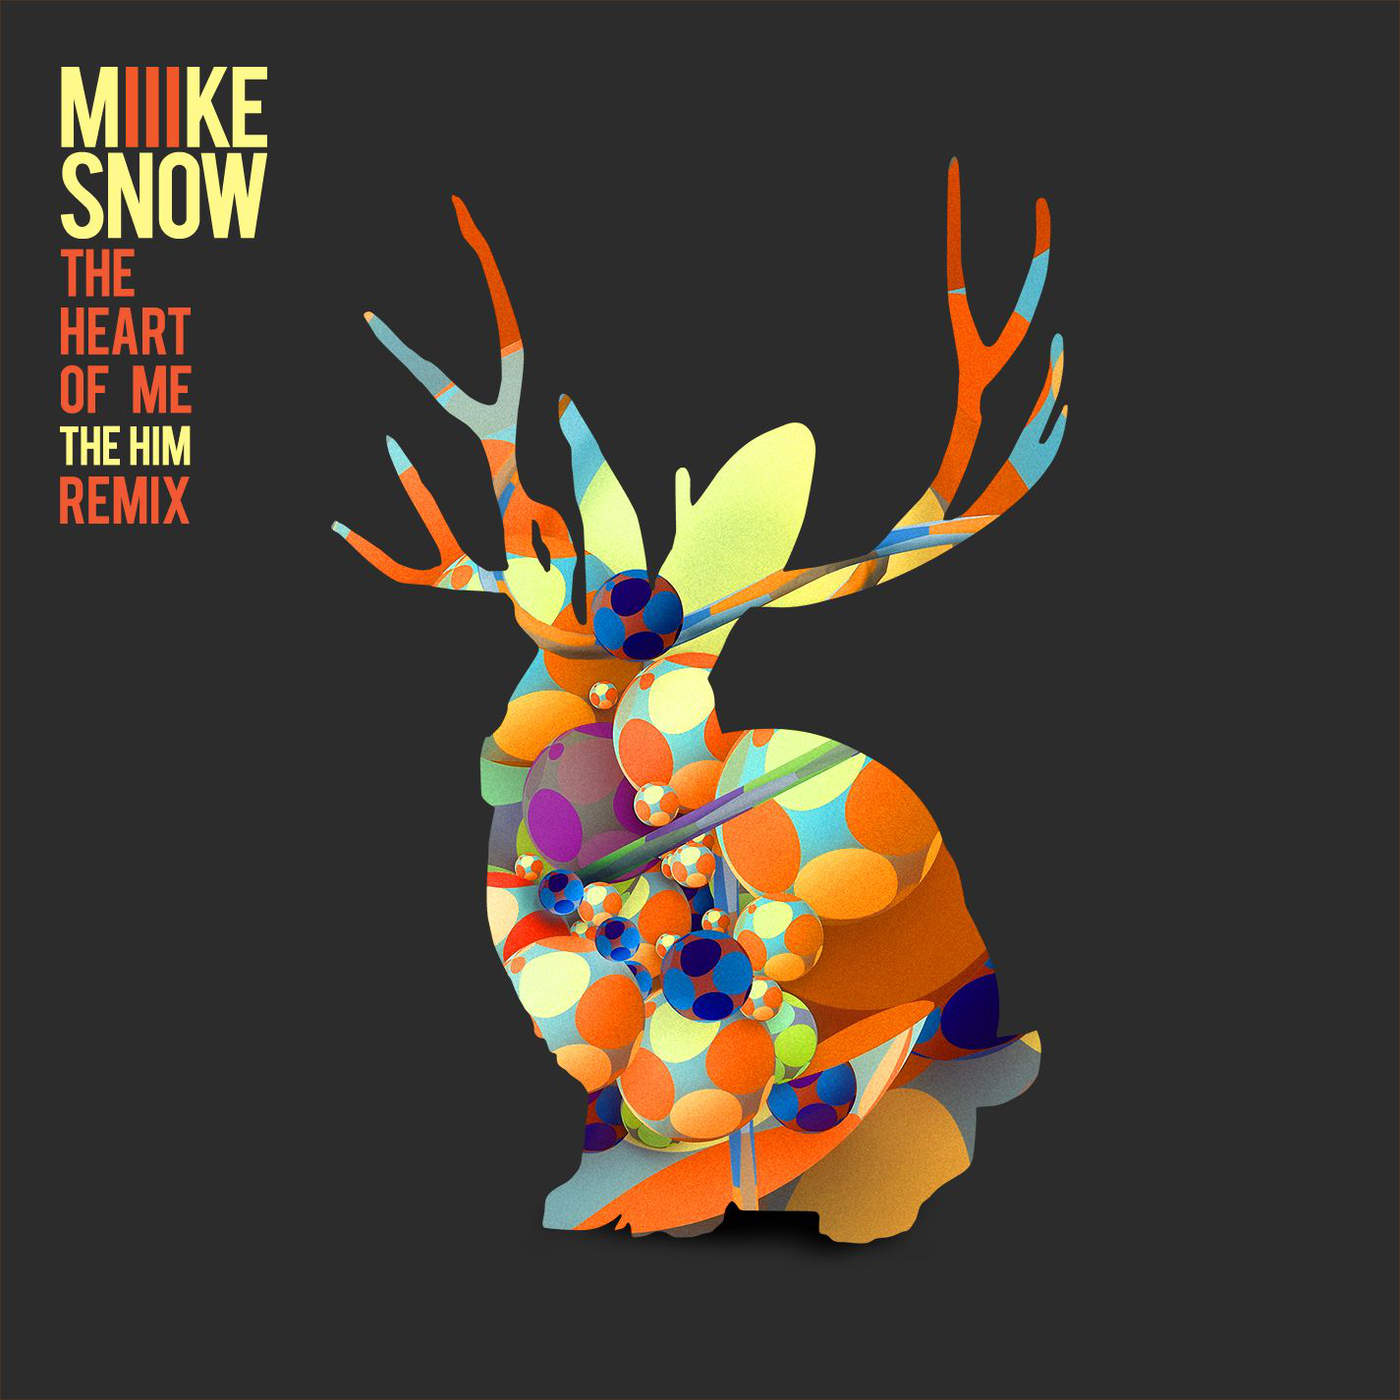 Miike Snow - Heart Of Me (The Him Remix)